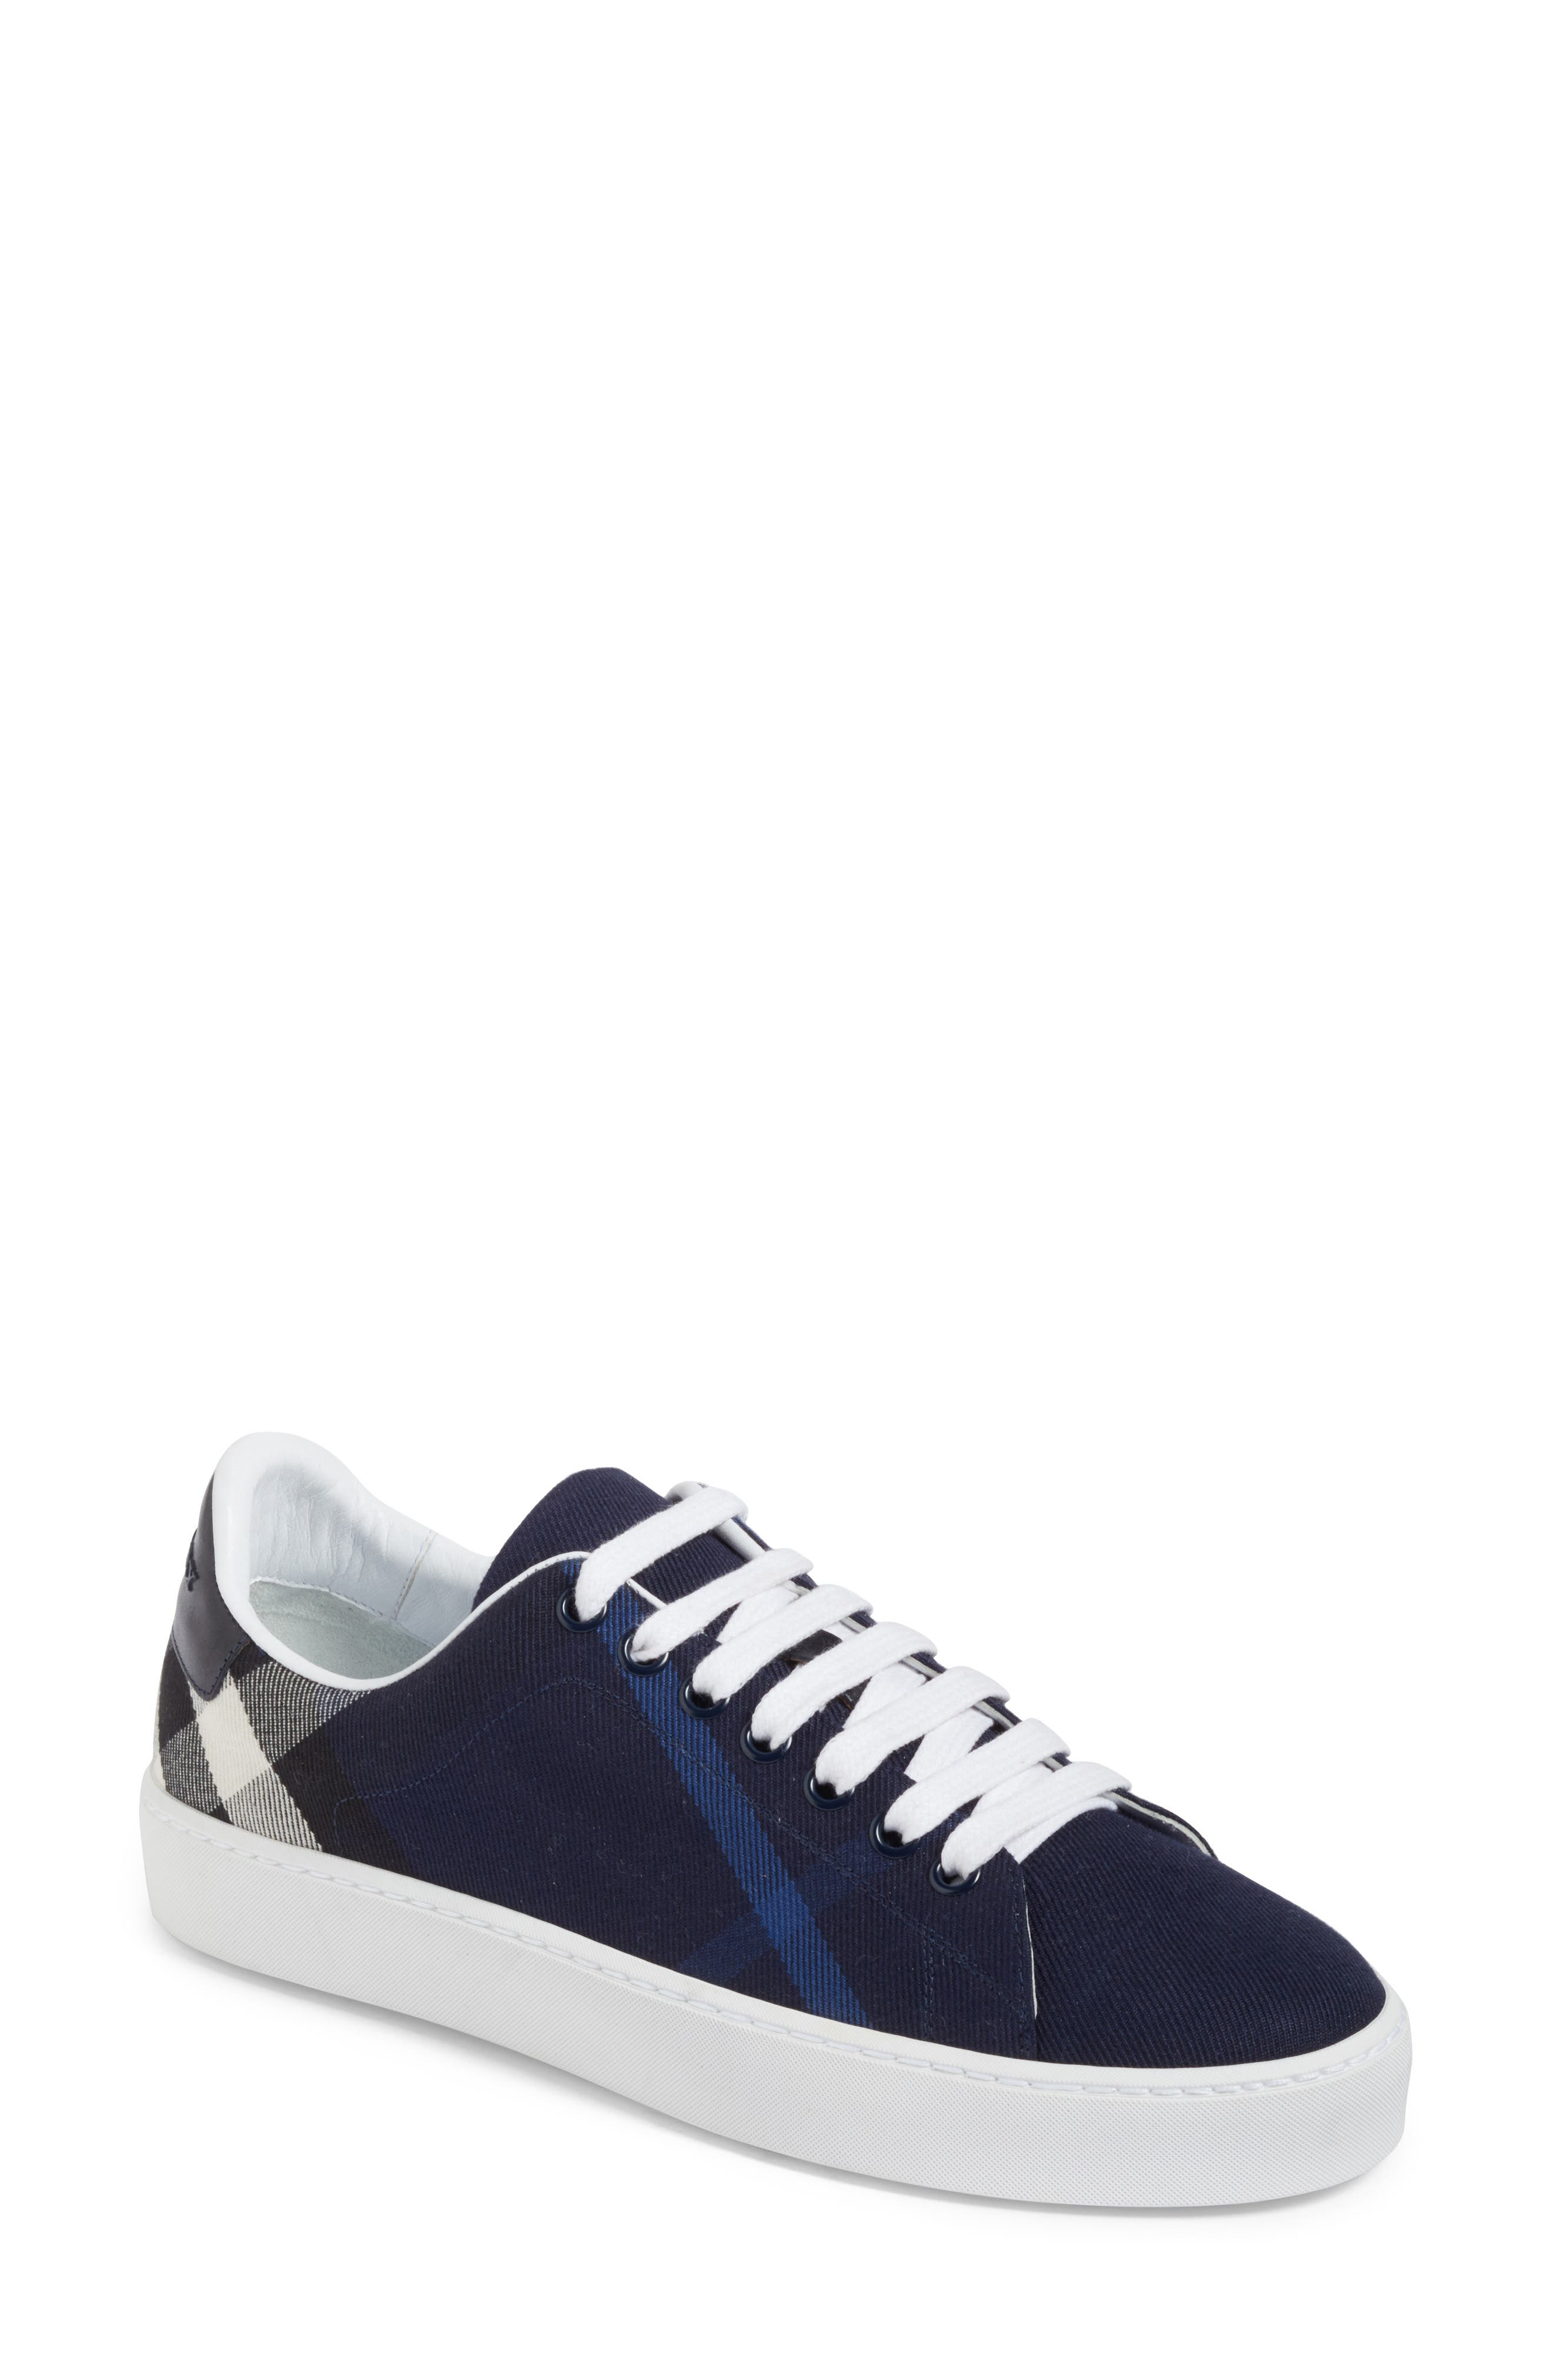 Burberry Check Canvas Lace-Up Sneaker (Women)